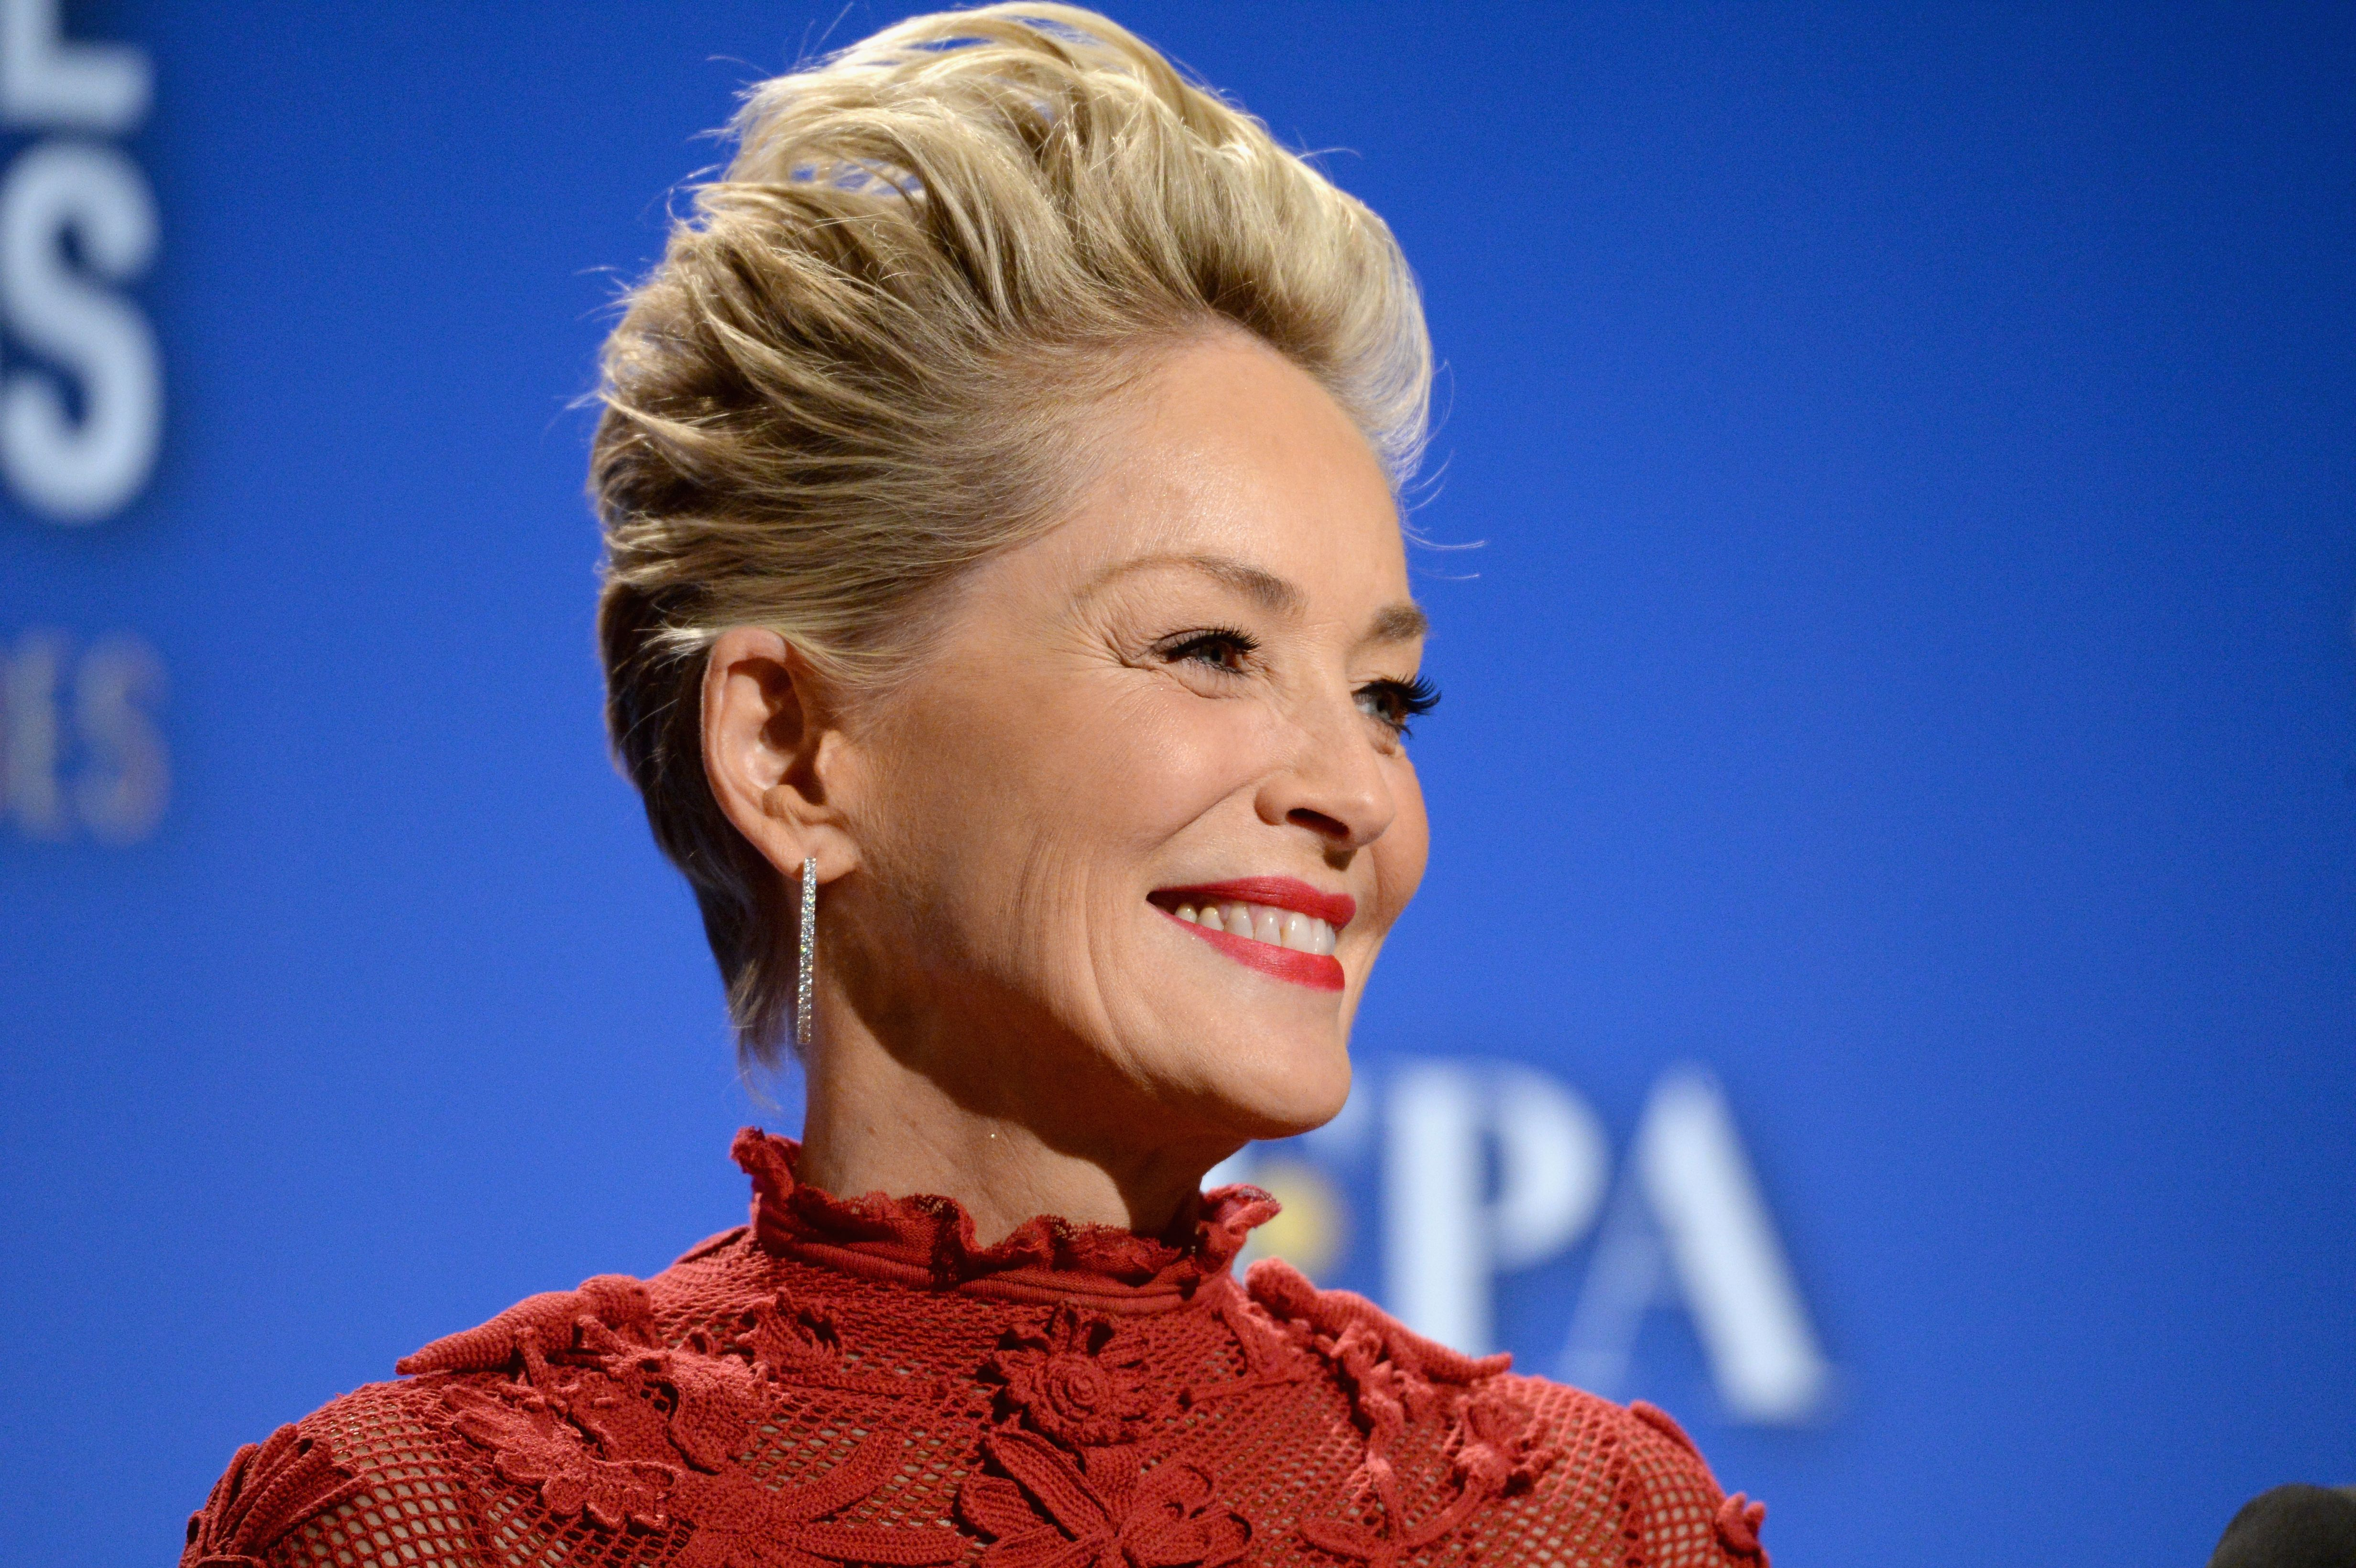 Sharon Stone during Moet & Chandon Toasts The 75th Annual Golden Globe Awards Nominations at The Beverly Hilton Hotel on December 11, 2017 in Beverly Hills, California. | Source: Getty Images